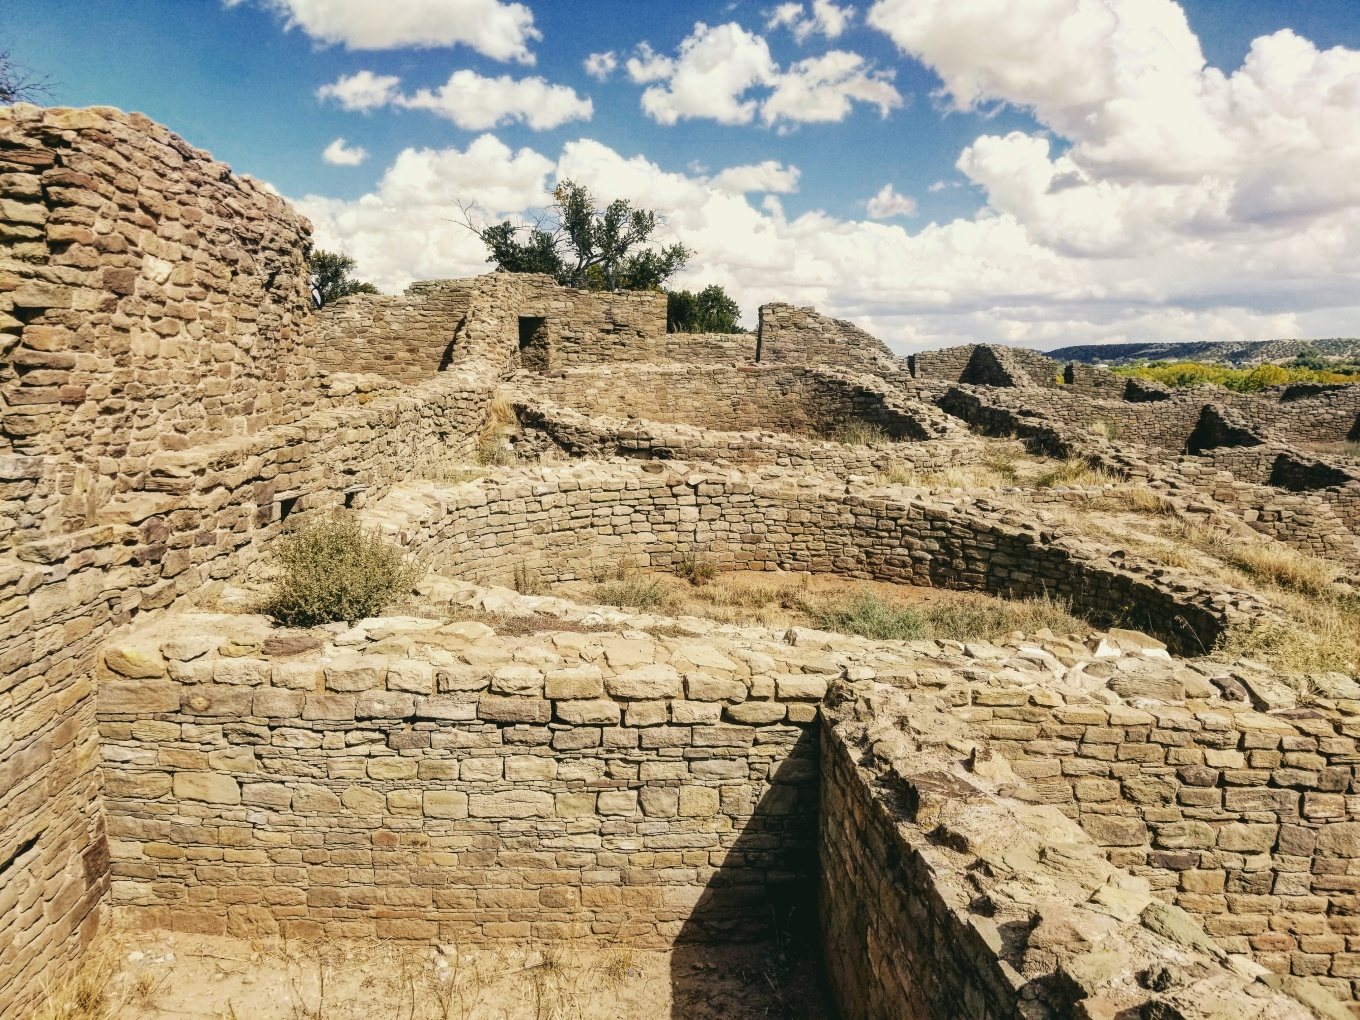 The Great House at Aztec Ruins National Monument, NM